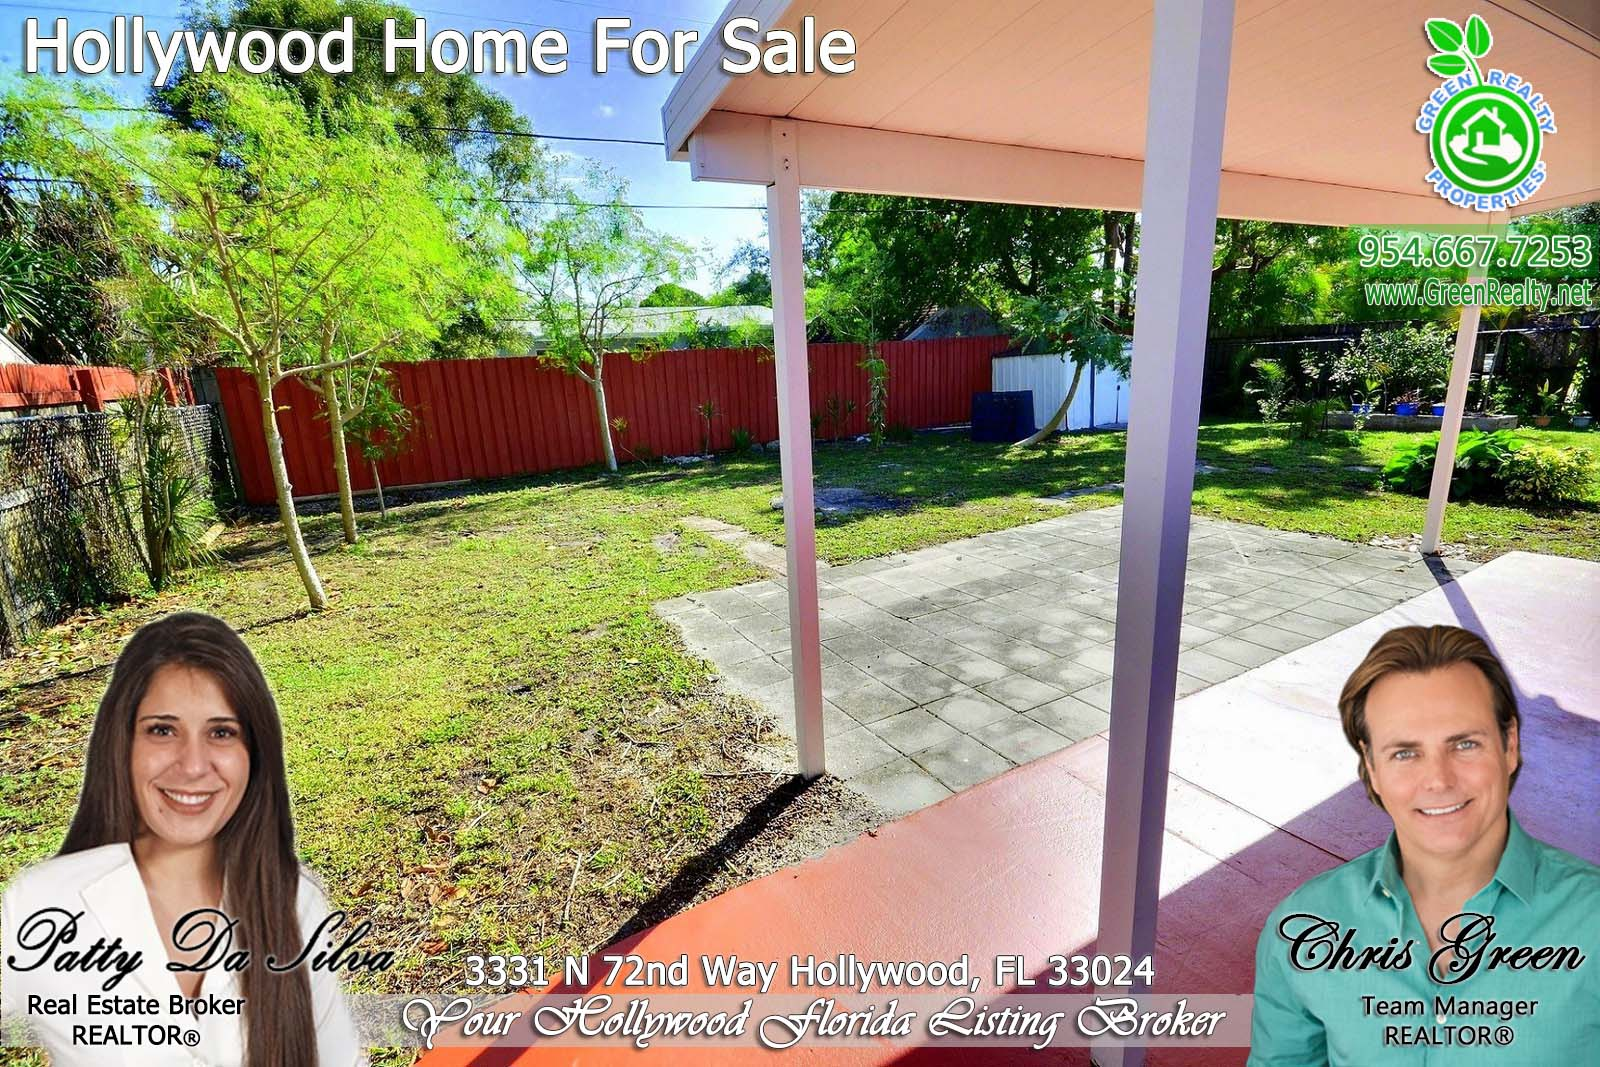 14 Homes For Sale in Hollywood Florida (5)